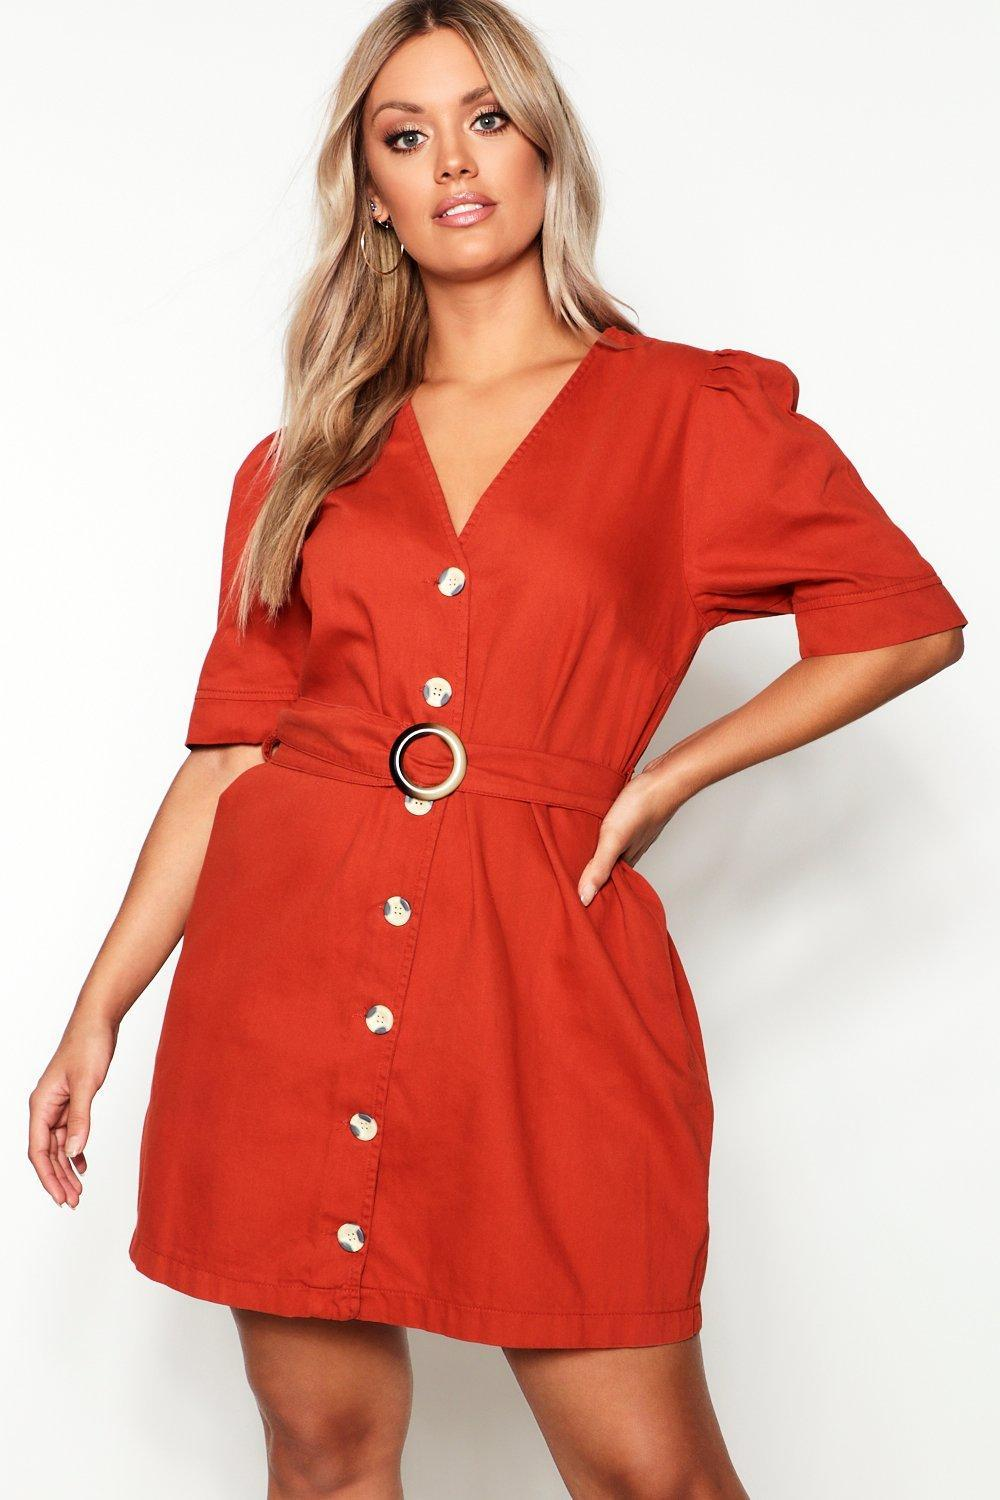 a7b3bdf123a1 Boohoo Plus Horn Buckle Button Down Denim Dress in Red - Lyst